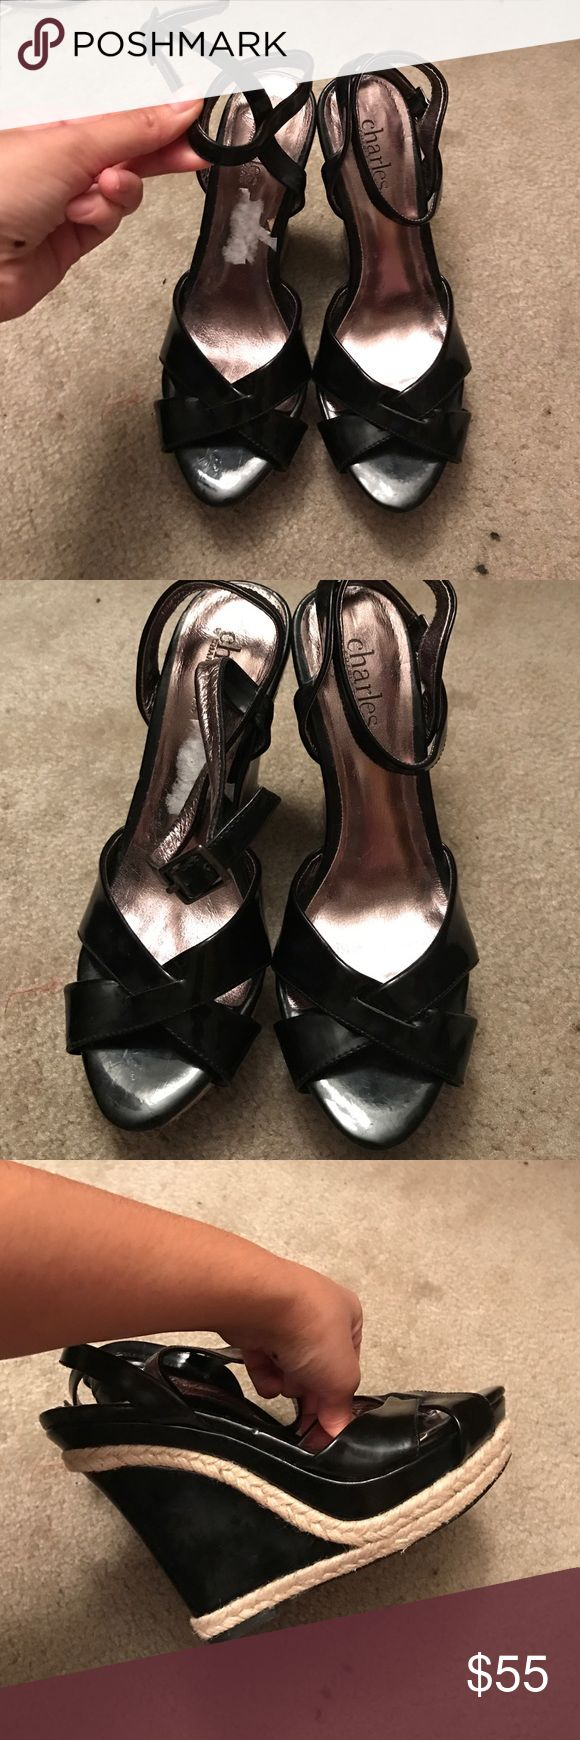 Charles by Charles David wedges They are in new condition (: Charles David Shoes Wedges